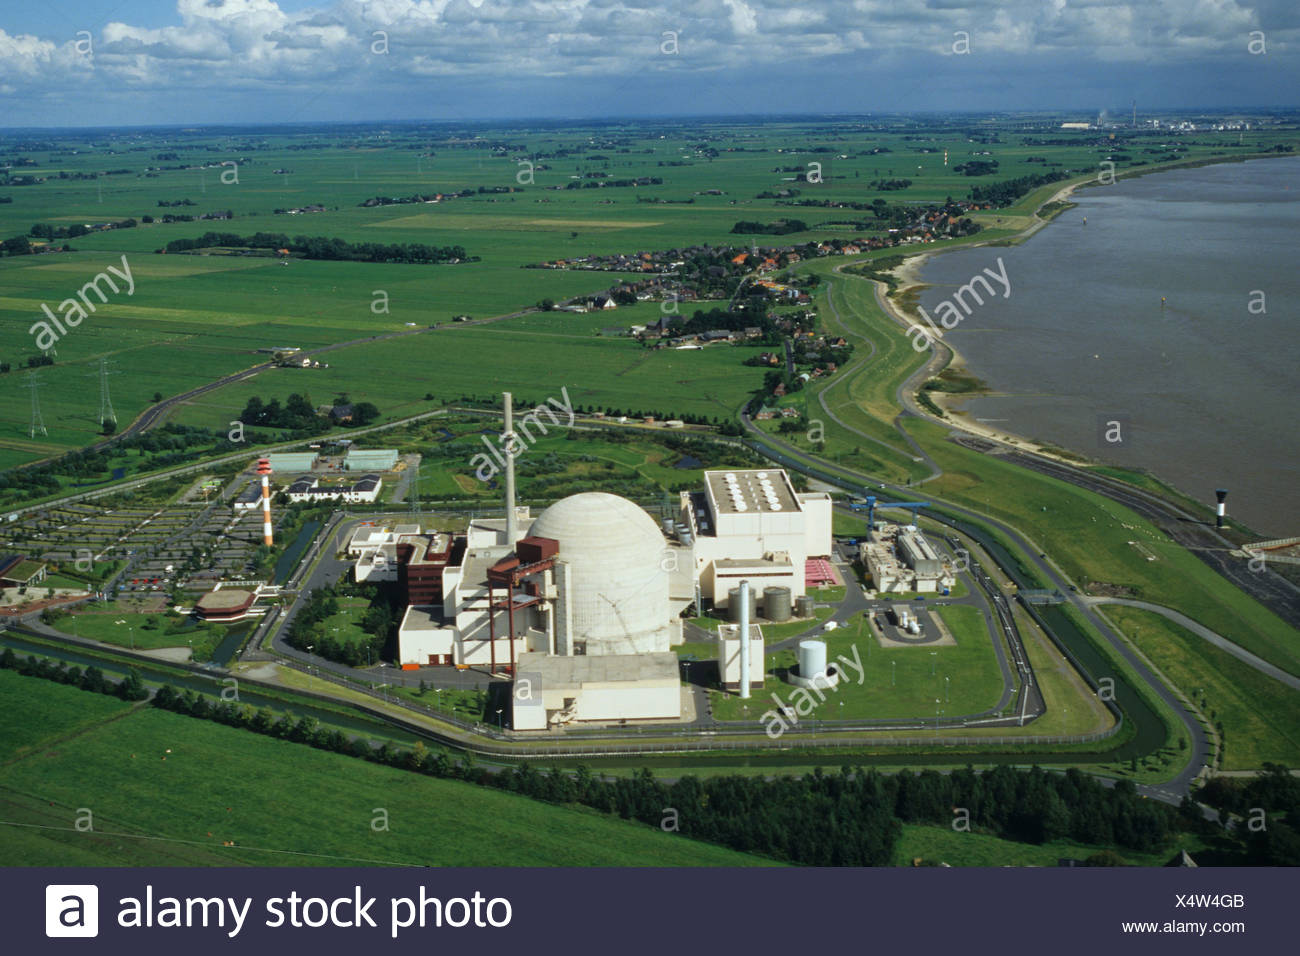 aerial photo nuclear power plant Brokdorf in the state of Schleswig-Holstein, Germany Stock Photo